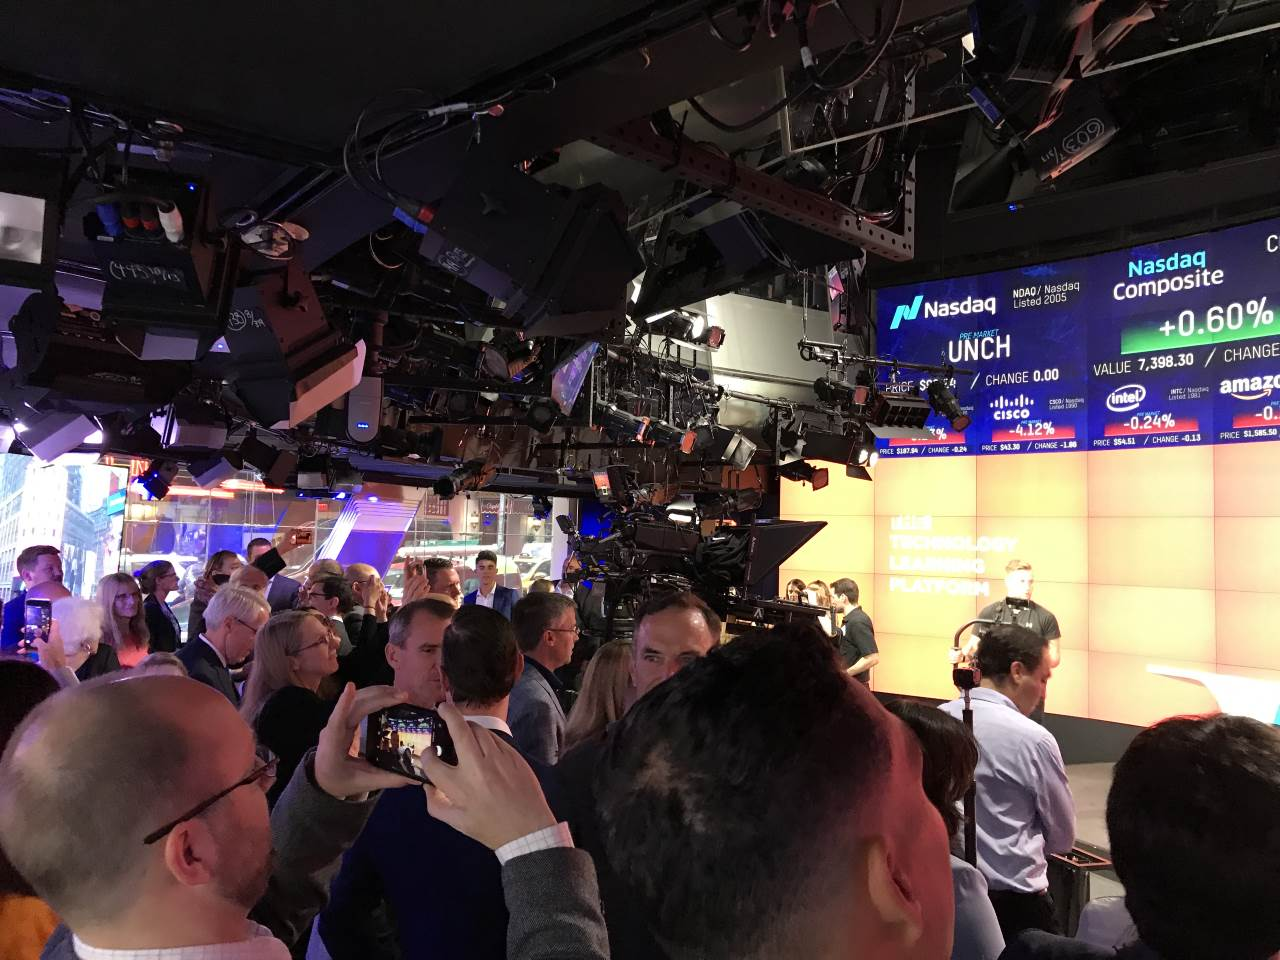 The NASDAQ Media Room